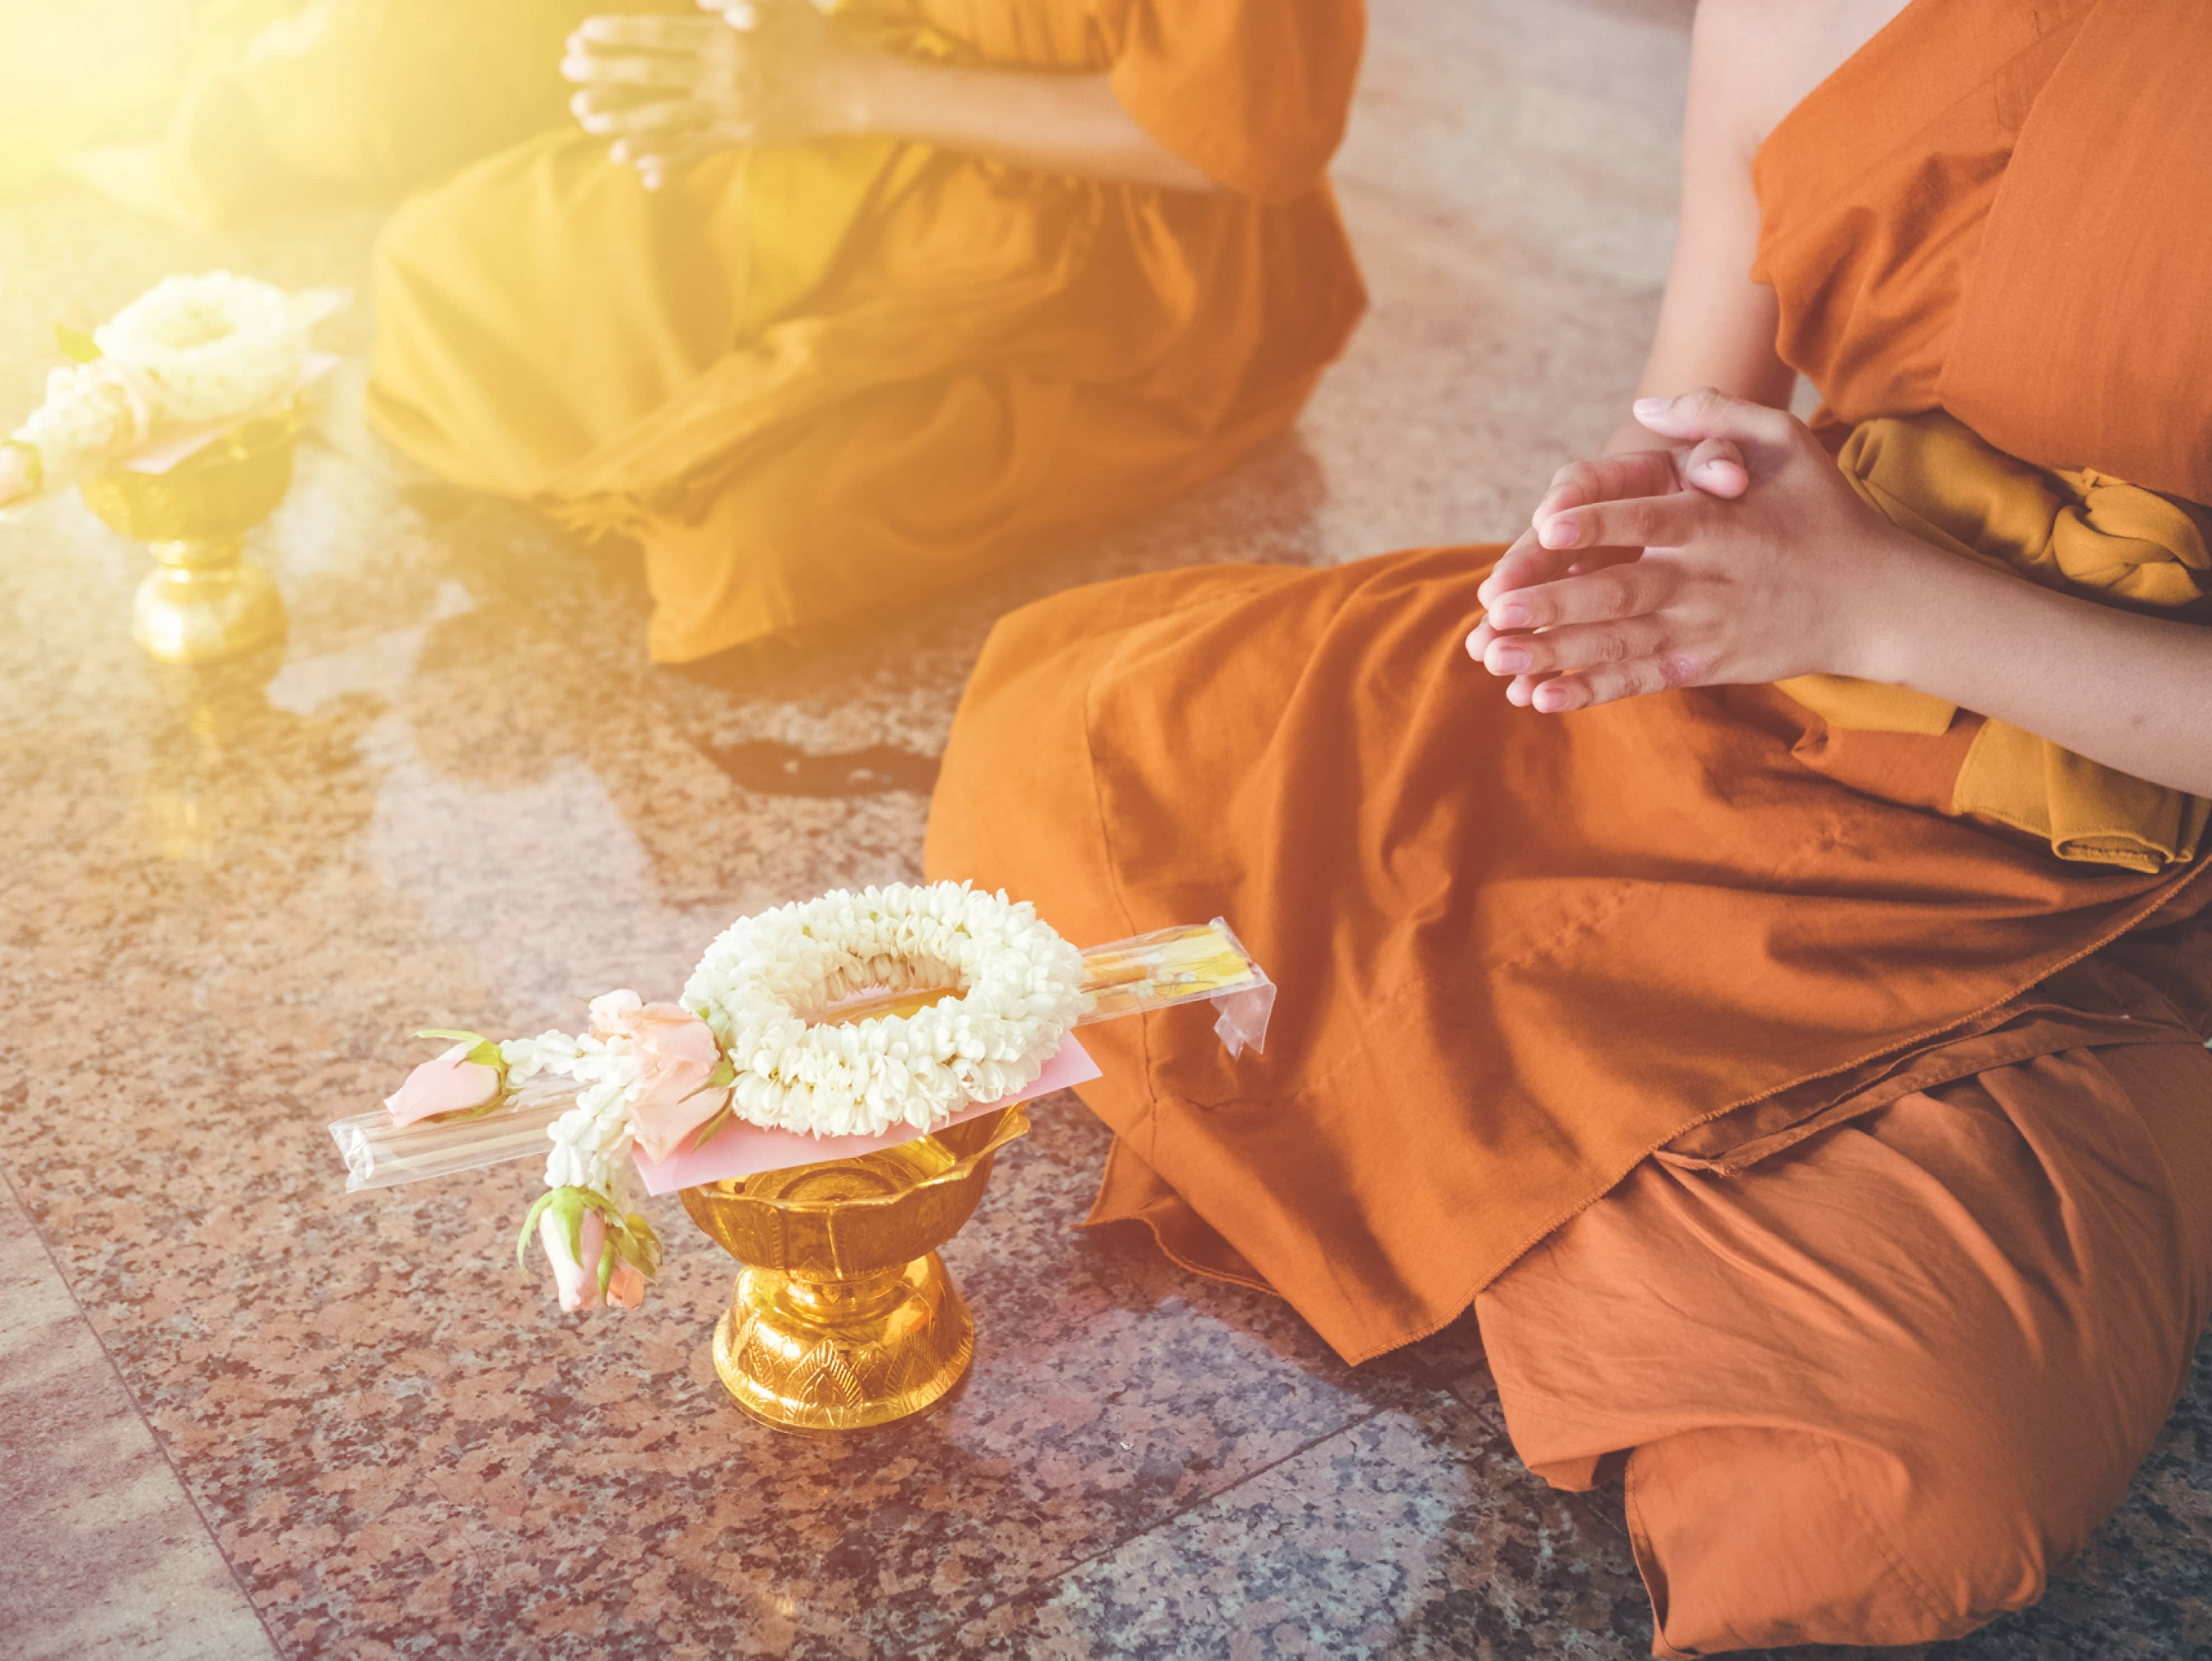 Receive a traditional Buddhist blessing from a monk